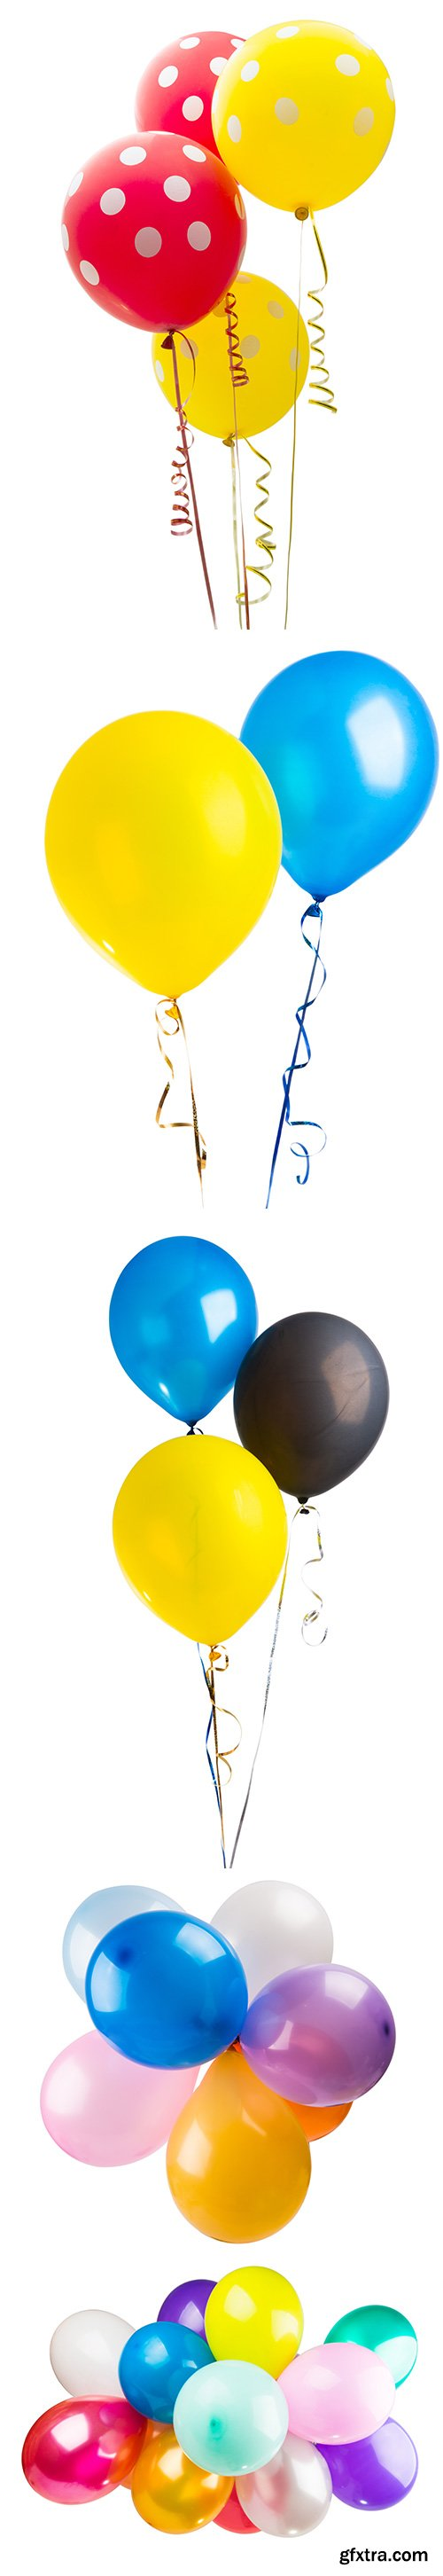 Colored Balloons Isolated - 10xJPGs